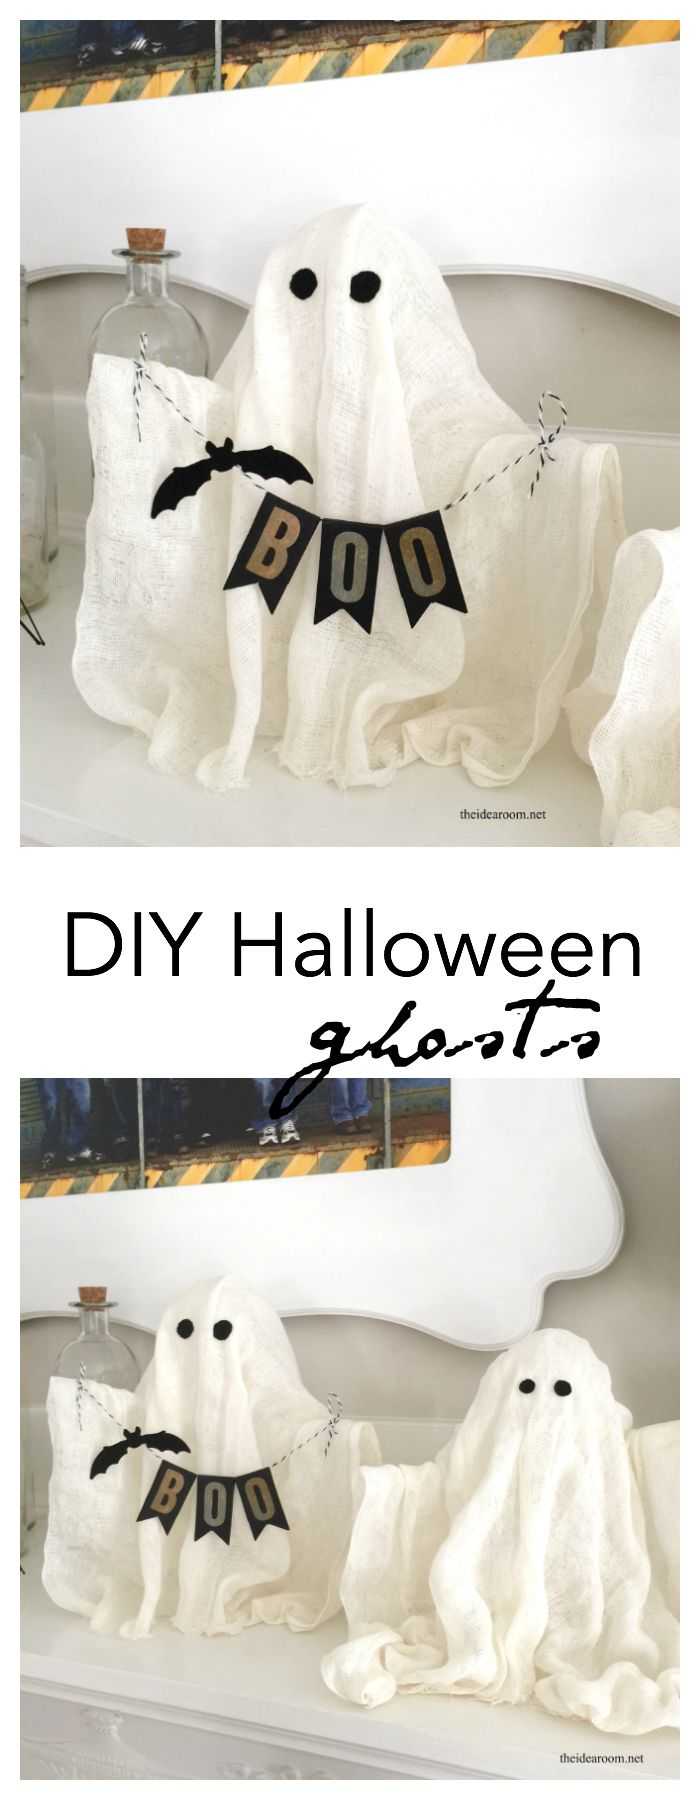 DIY Halloween Ghosts Tutorial